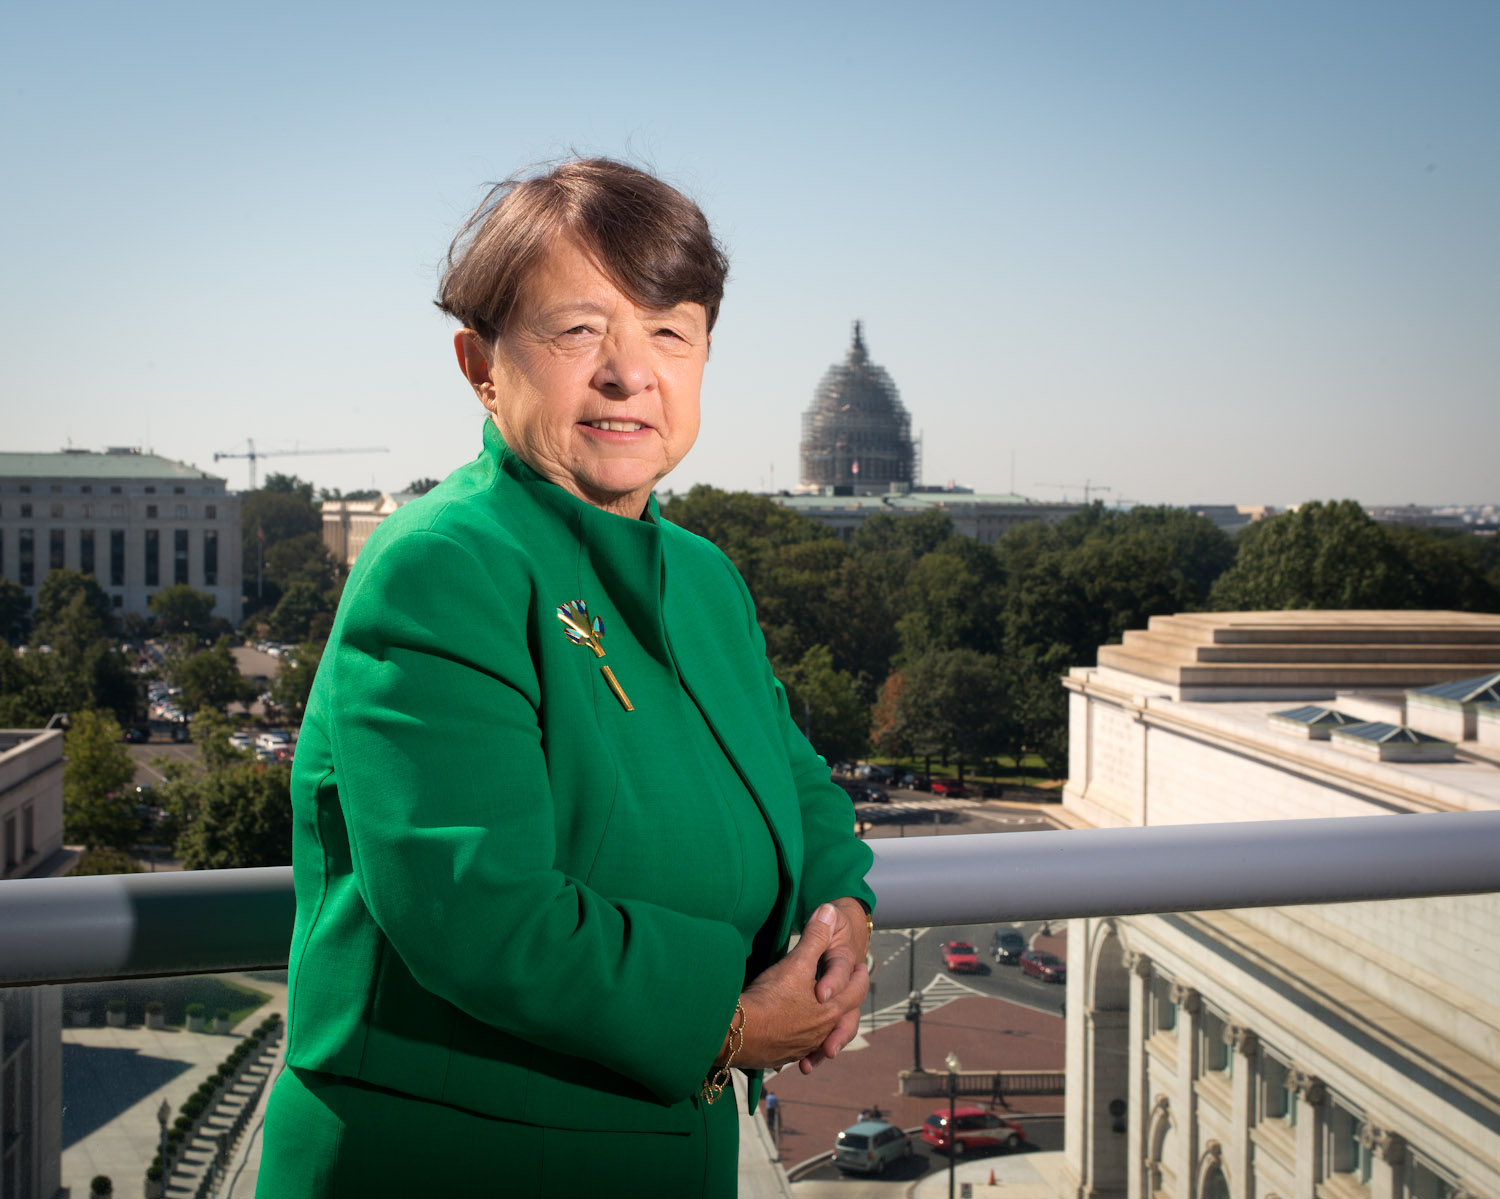 September 16, 2015 - SEC Chairwoman Mary Jo White at her office in the SEC Building near Union Station in NE Washington, DC.Photo by Susana Raab